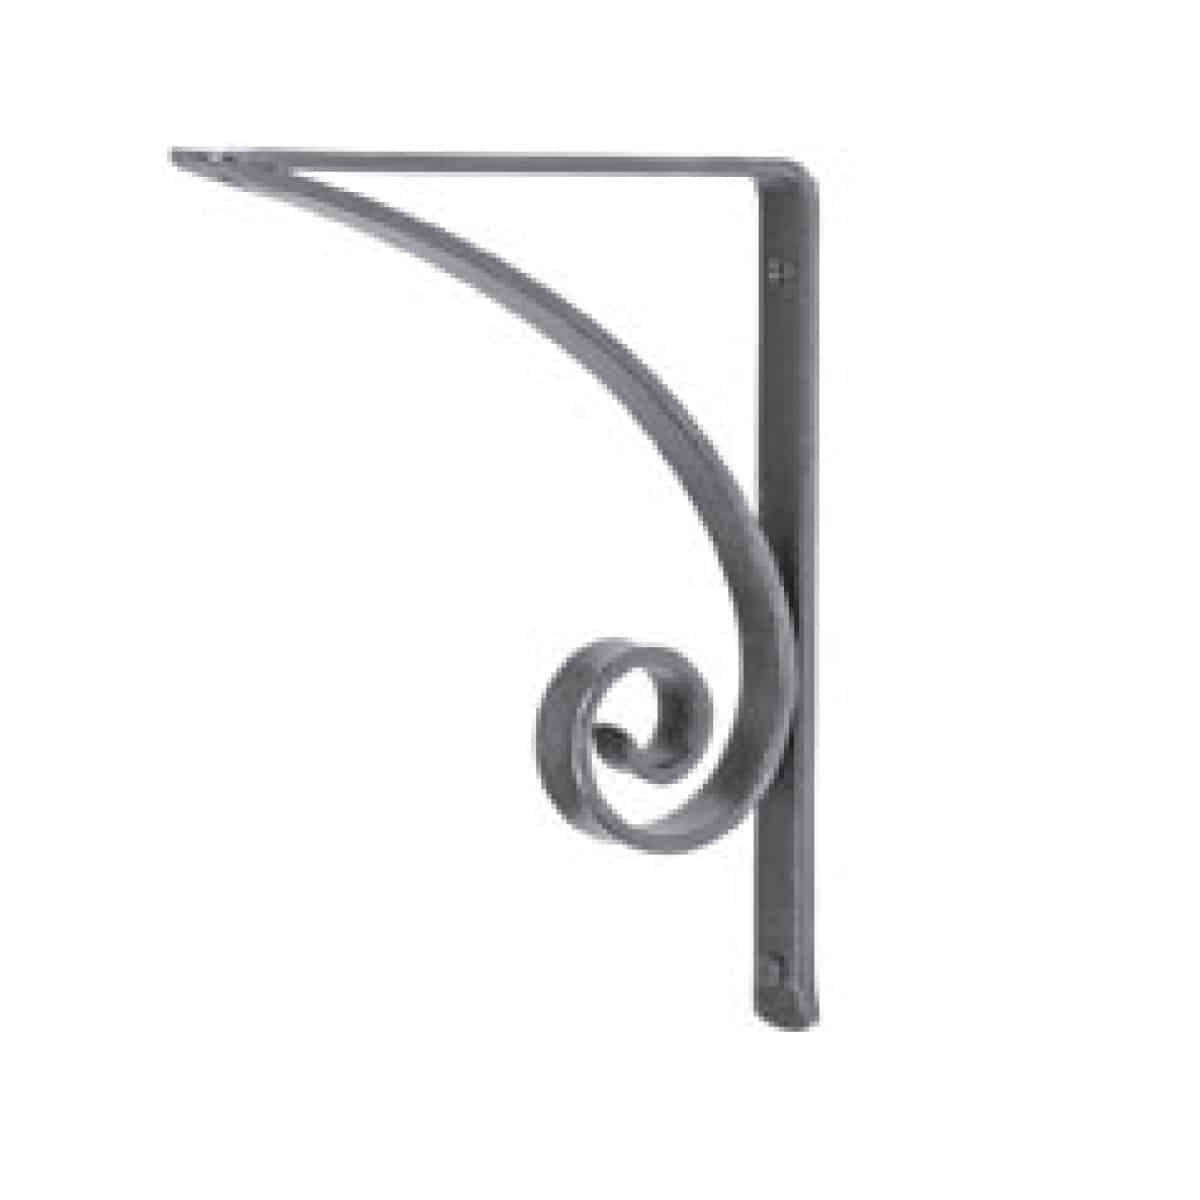 Spiral Shelf Brackets